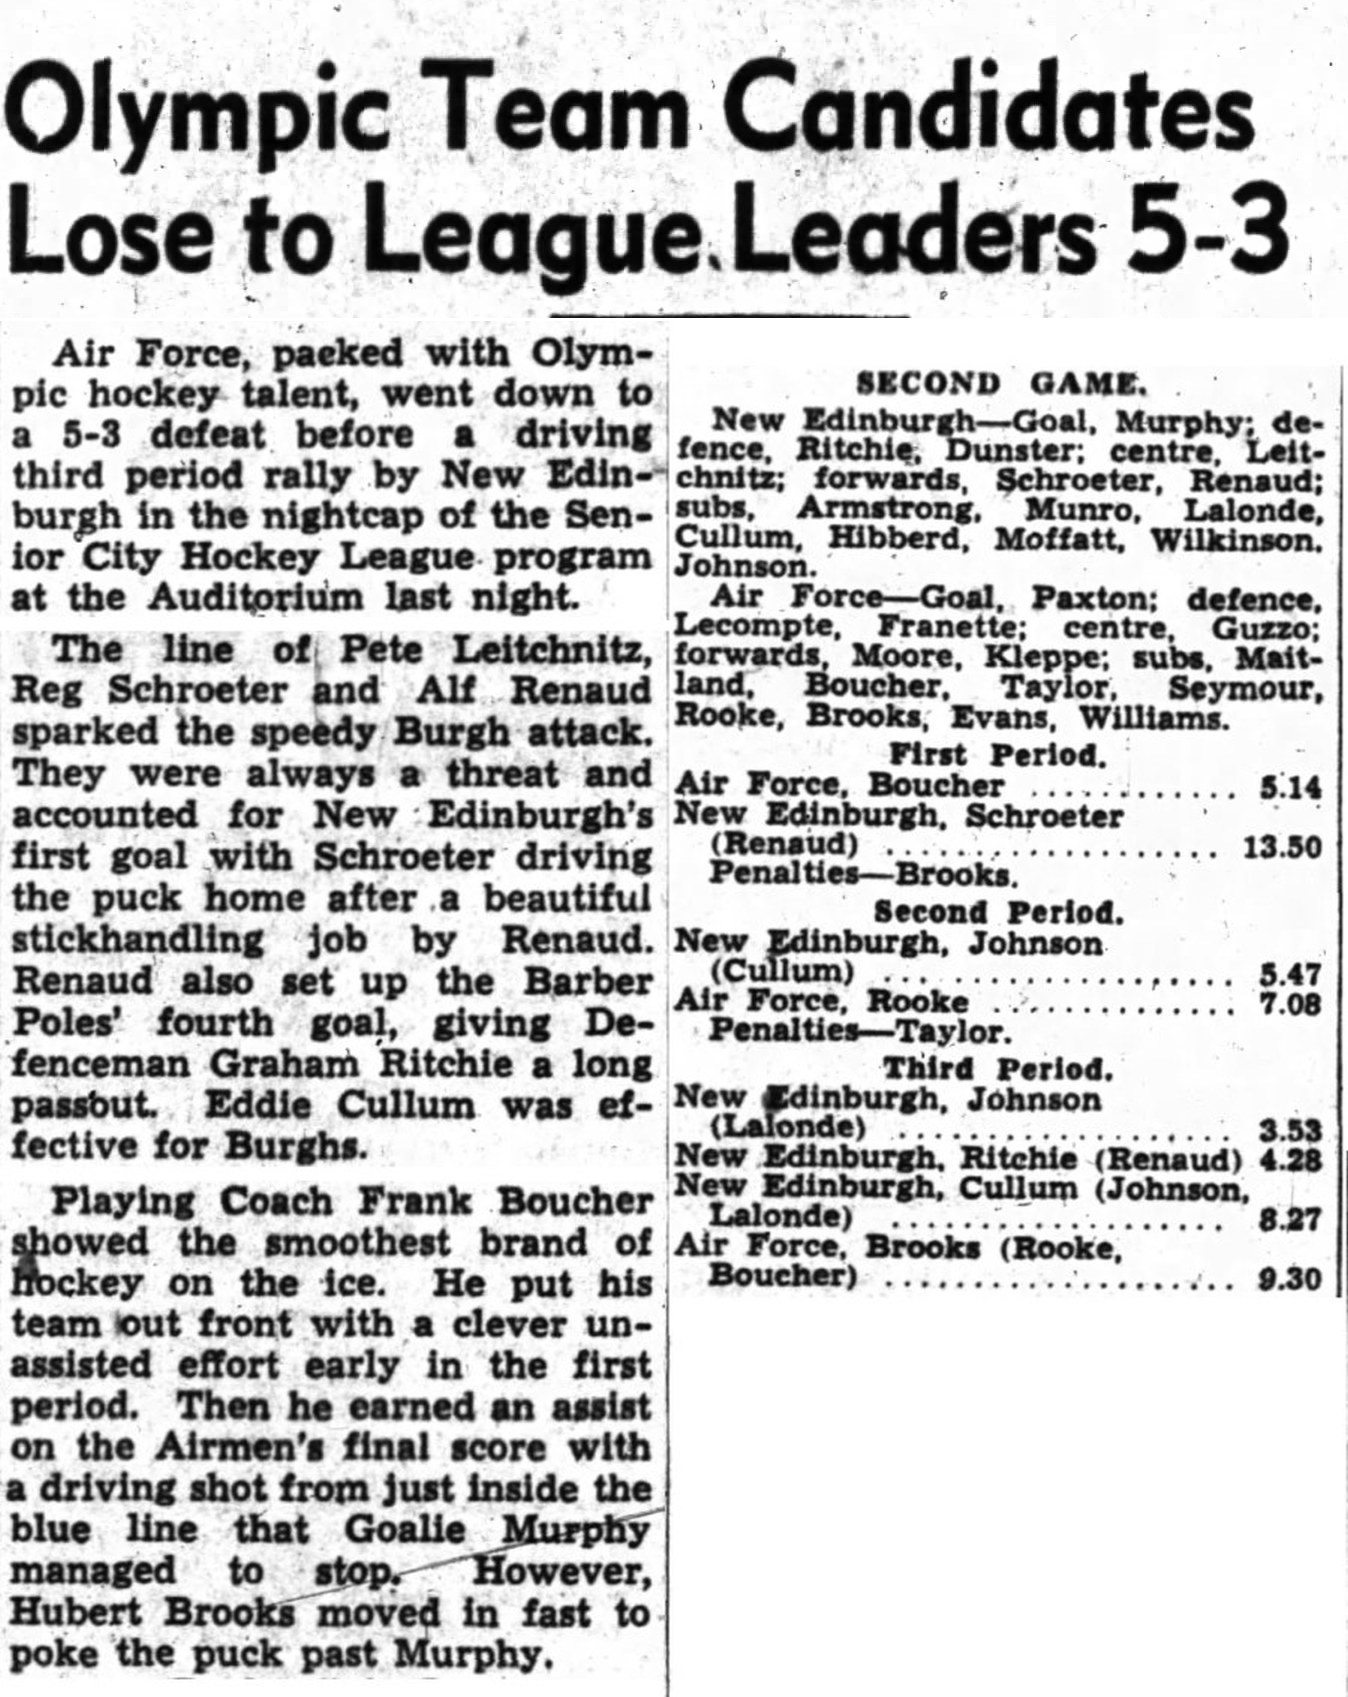 PHOTO: Oct 29 1947 OJ Newspaper Article excerpts  RCAF Flyer vs  Edinburgh loss 5 to 3 in Ottawa City League